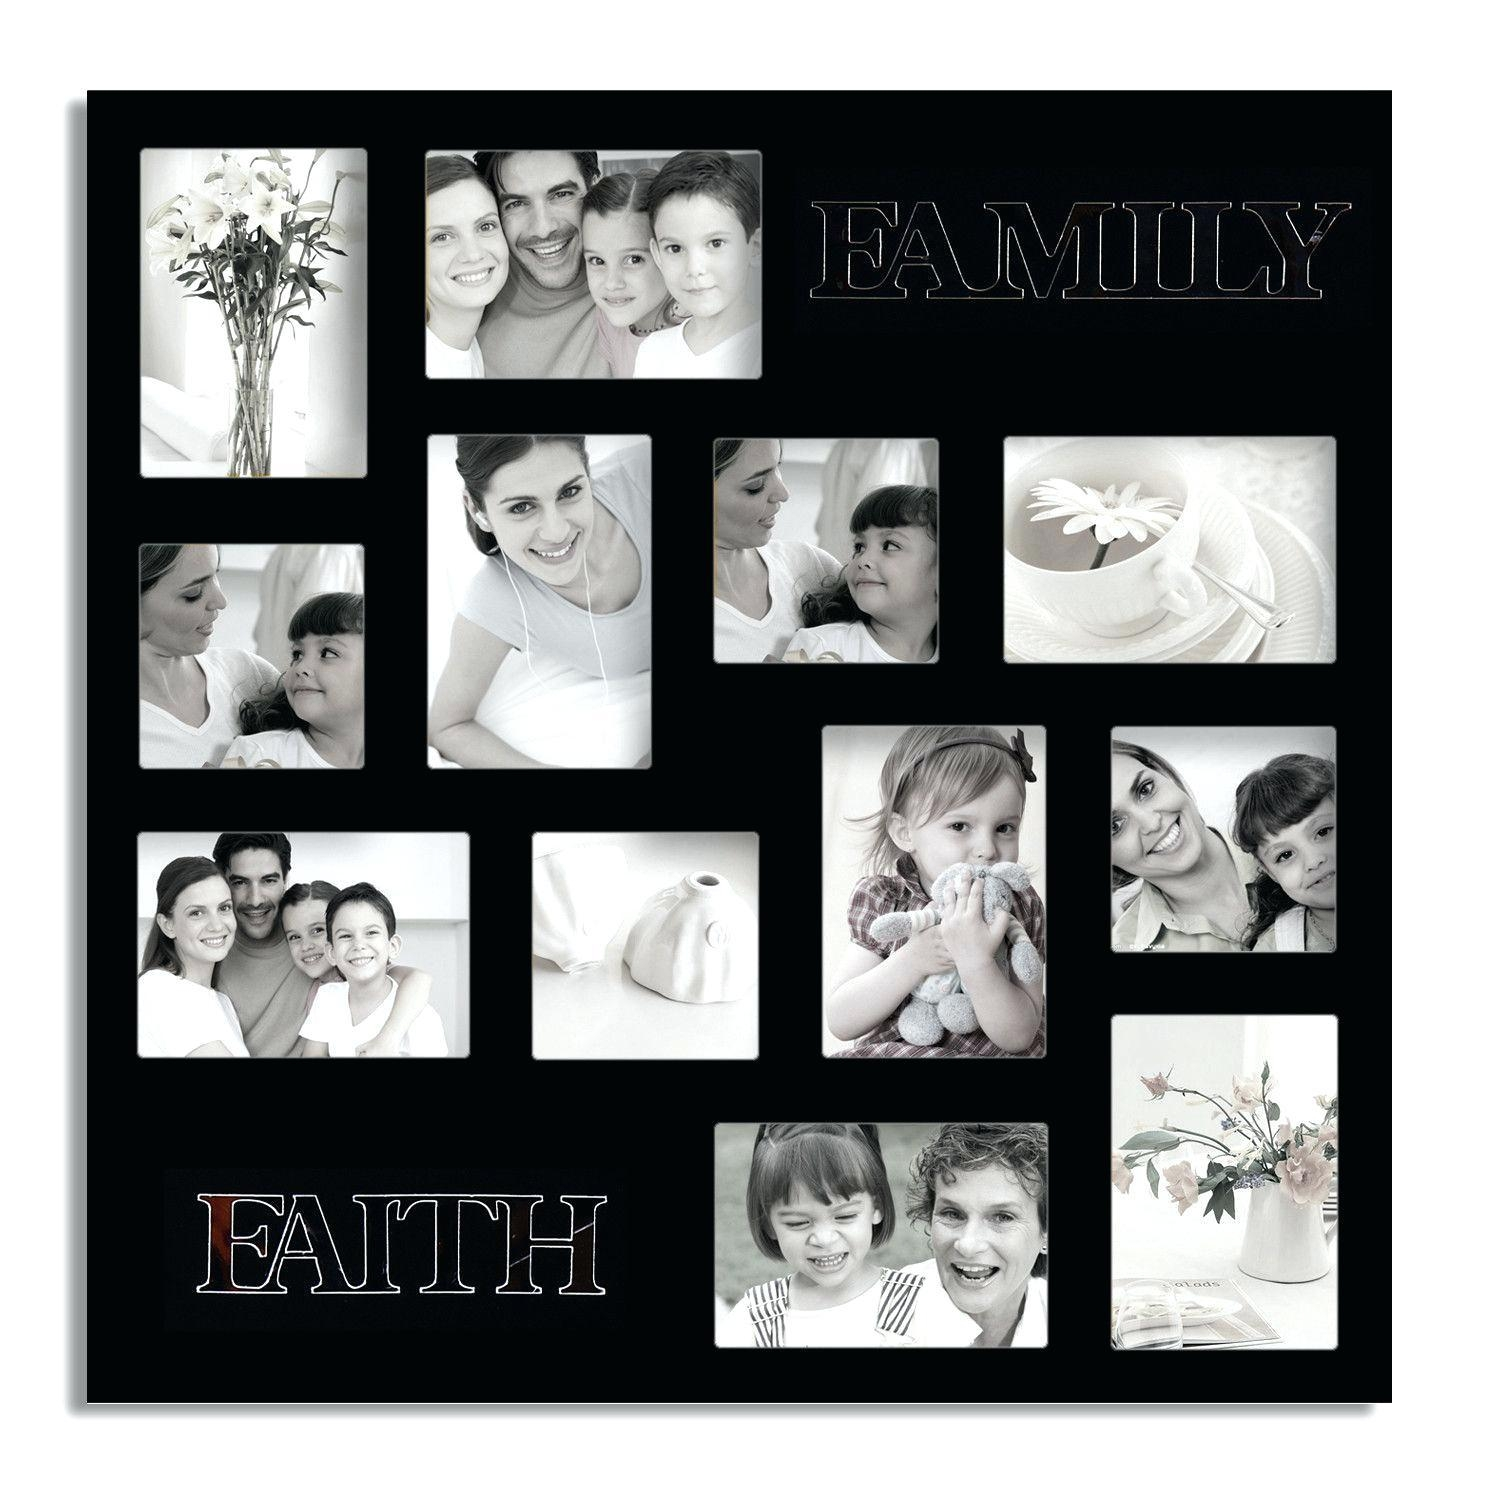 Diy Family Picture Frame Ideas Wall Art Hanging #32073 Interior Intended For Family Wall Art Picture Frames (Image 6 of 20)